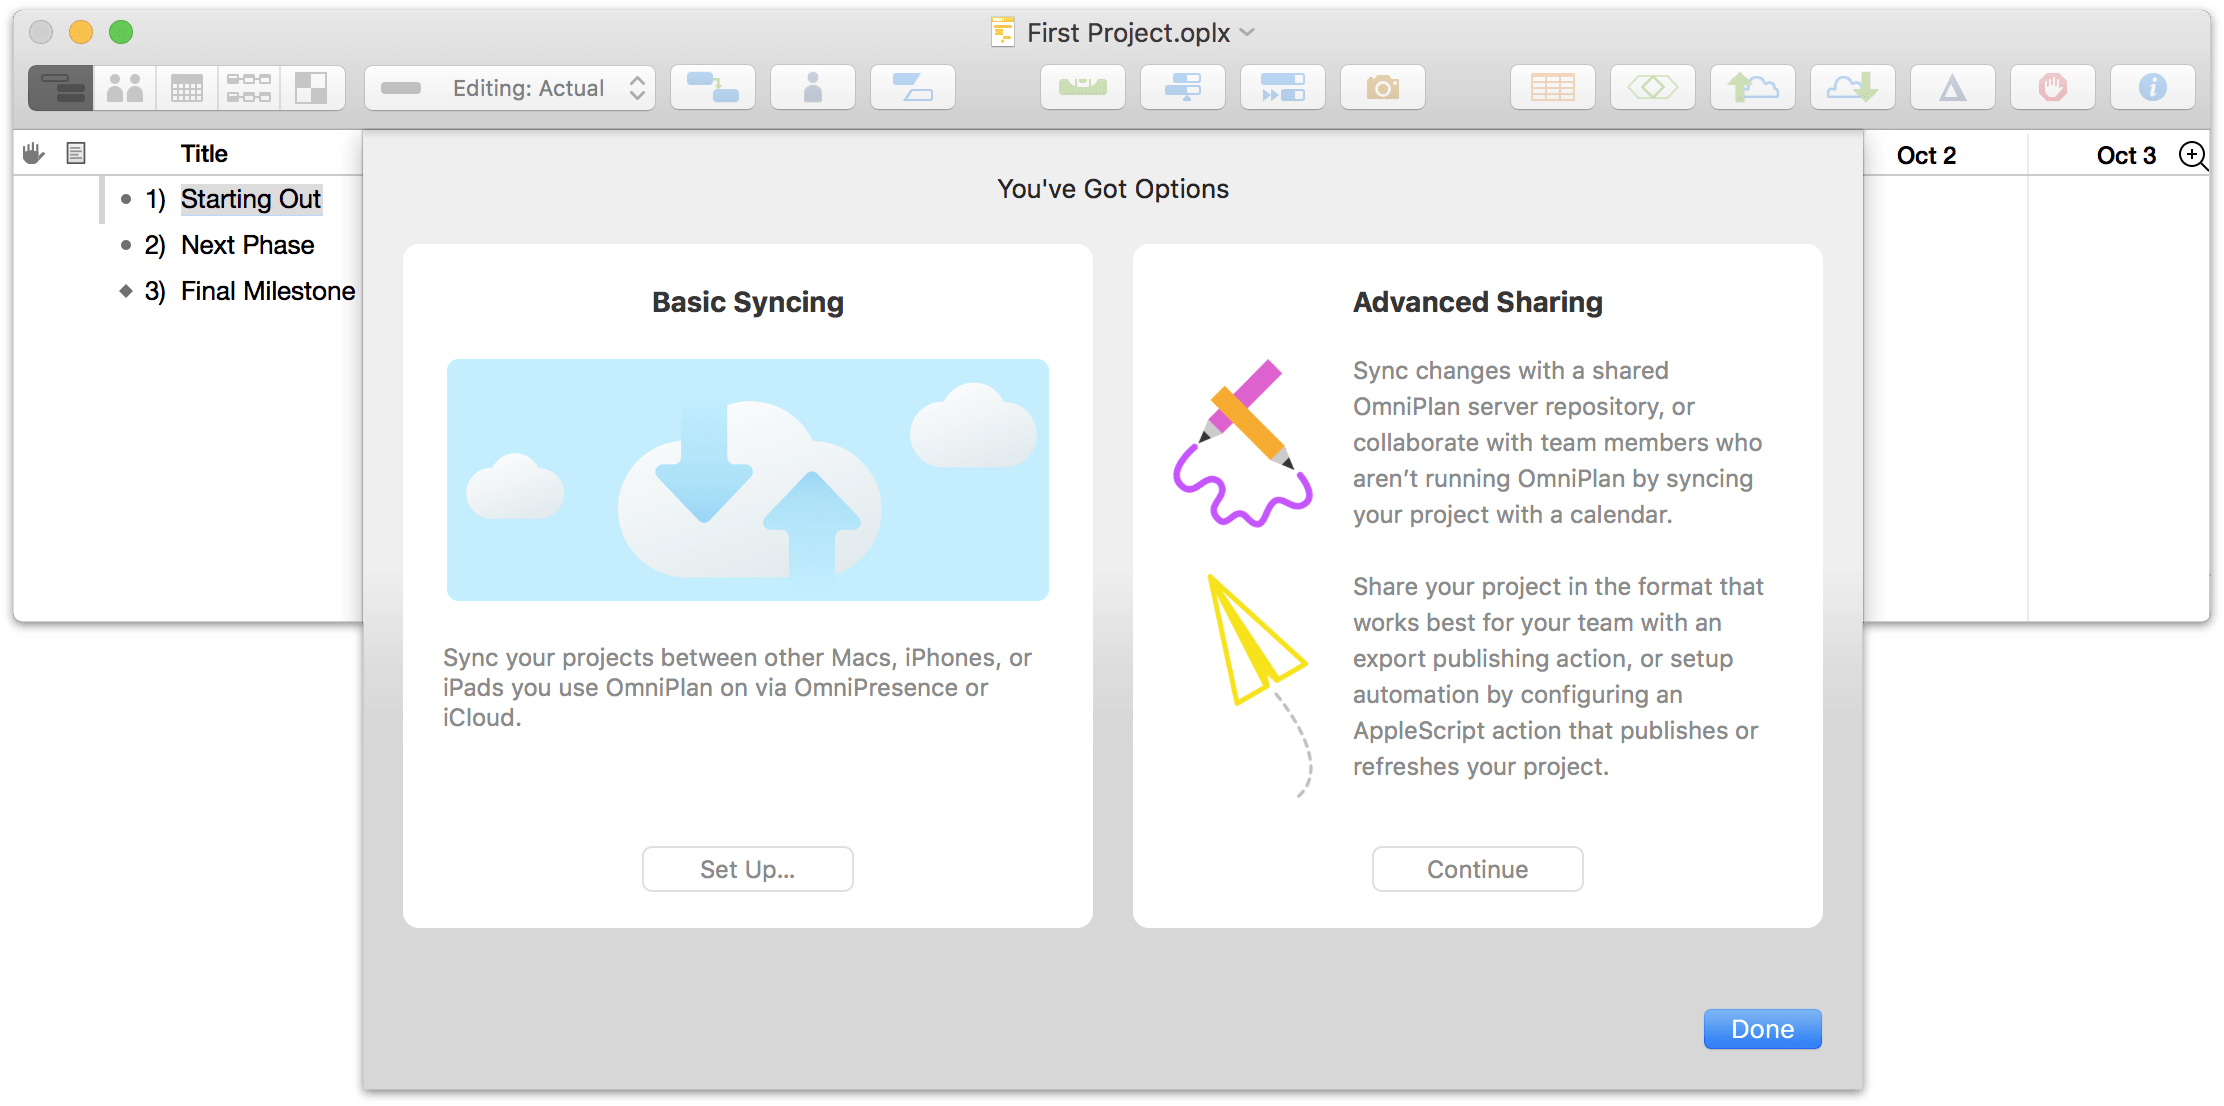 Setting up sharing options for a project in OmniPlan 3.10 for Mac, Step 1.